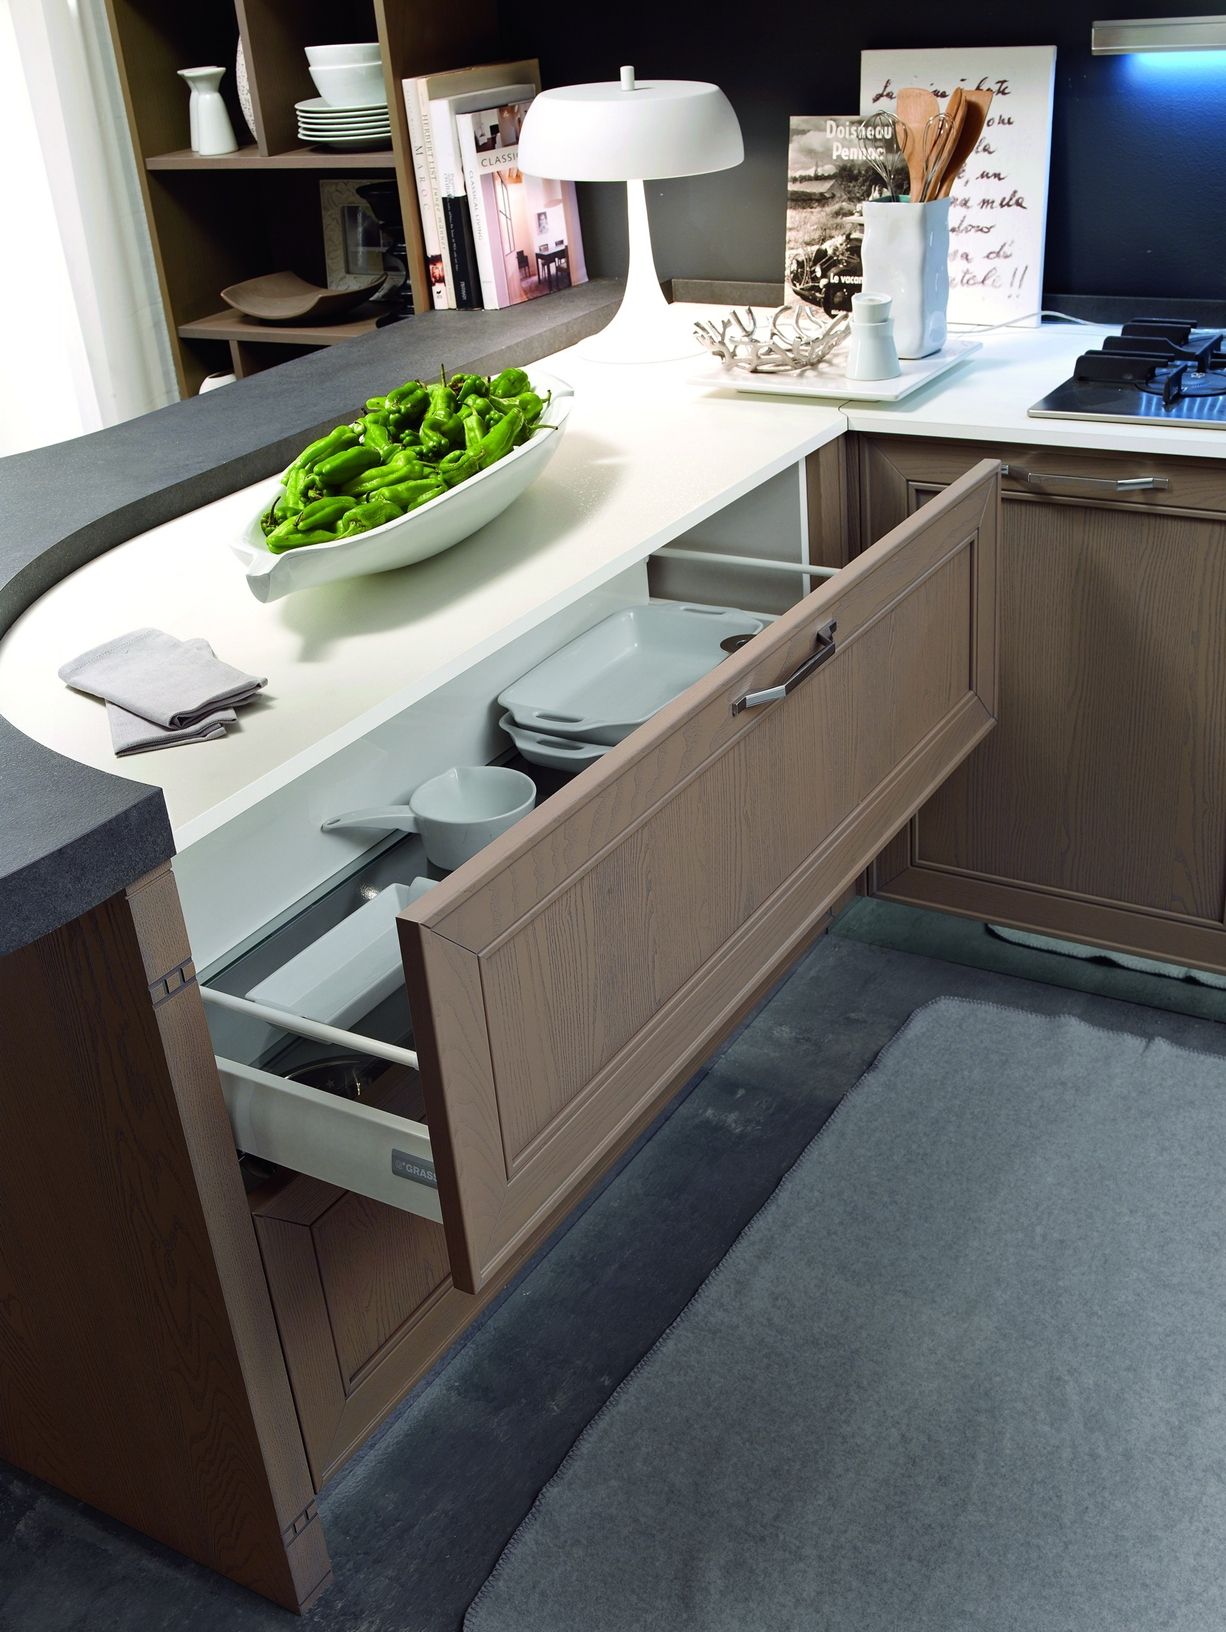 Emejing Stosa Cucine Recensioni Pictures - Skilifts.us - skilifts.us